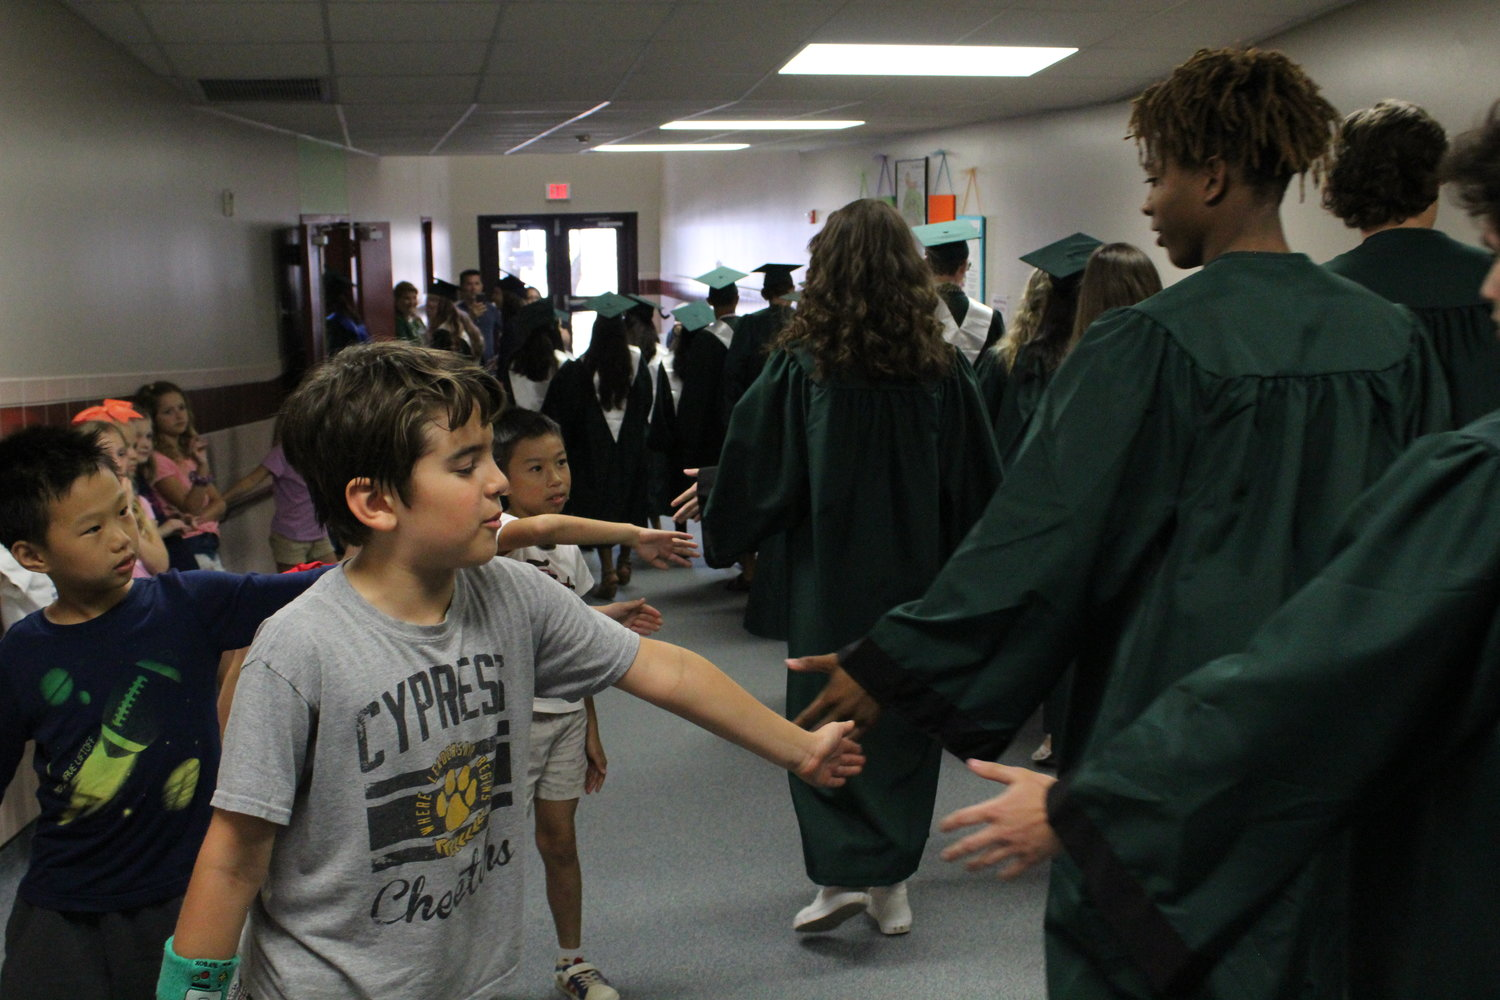 Brandon Brown, a student at Cypress Elementary School, high-fives graduating seniors from Cedar Park High School on May 29, 2019.